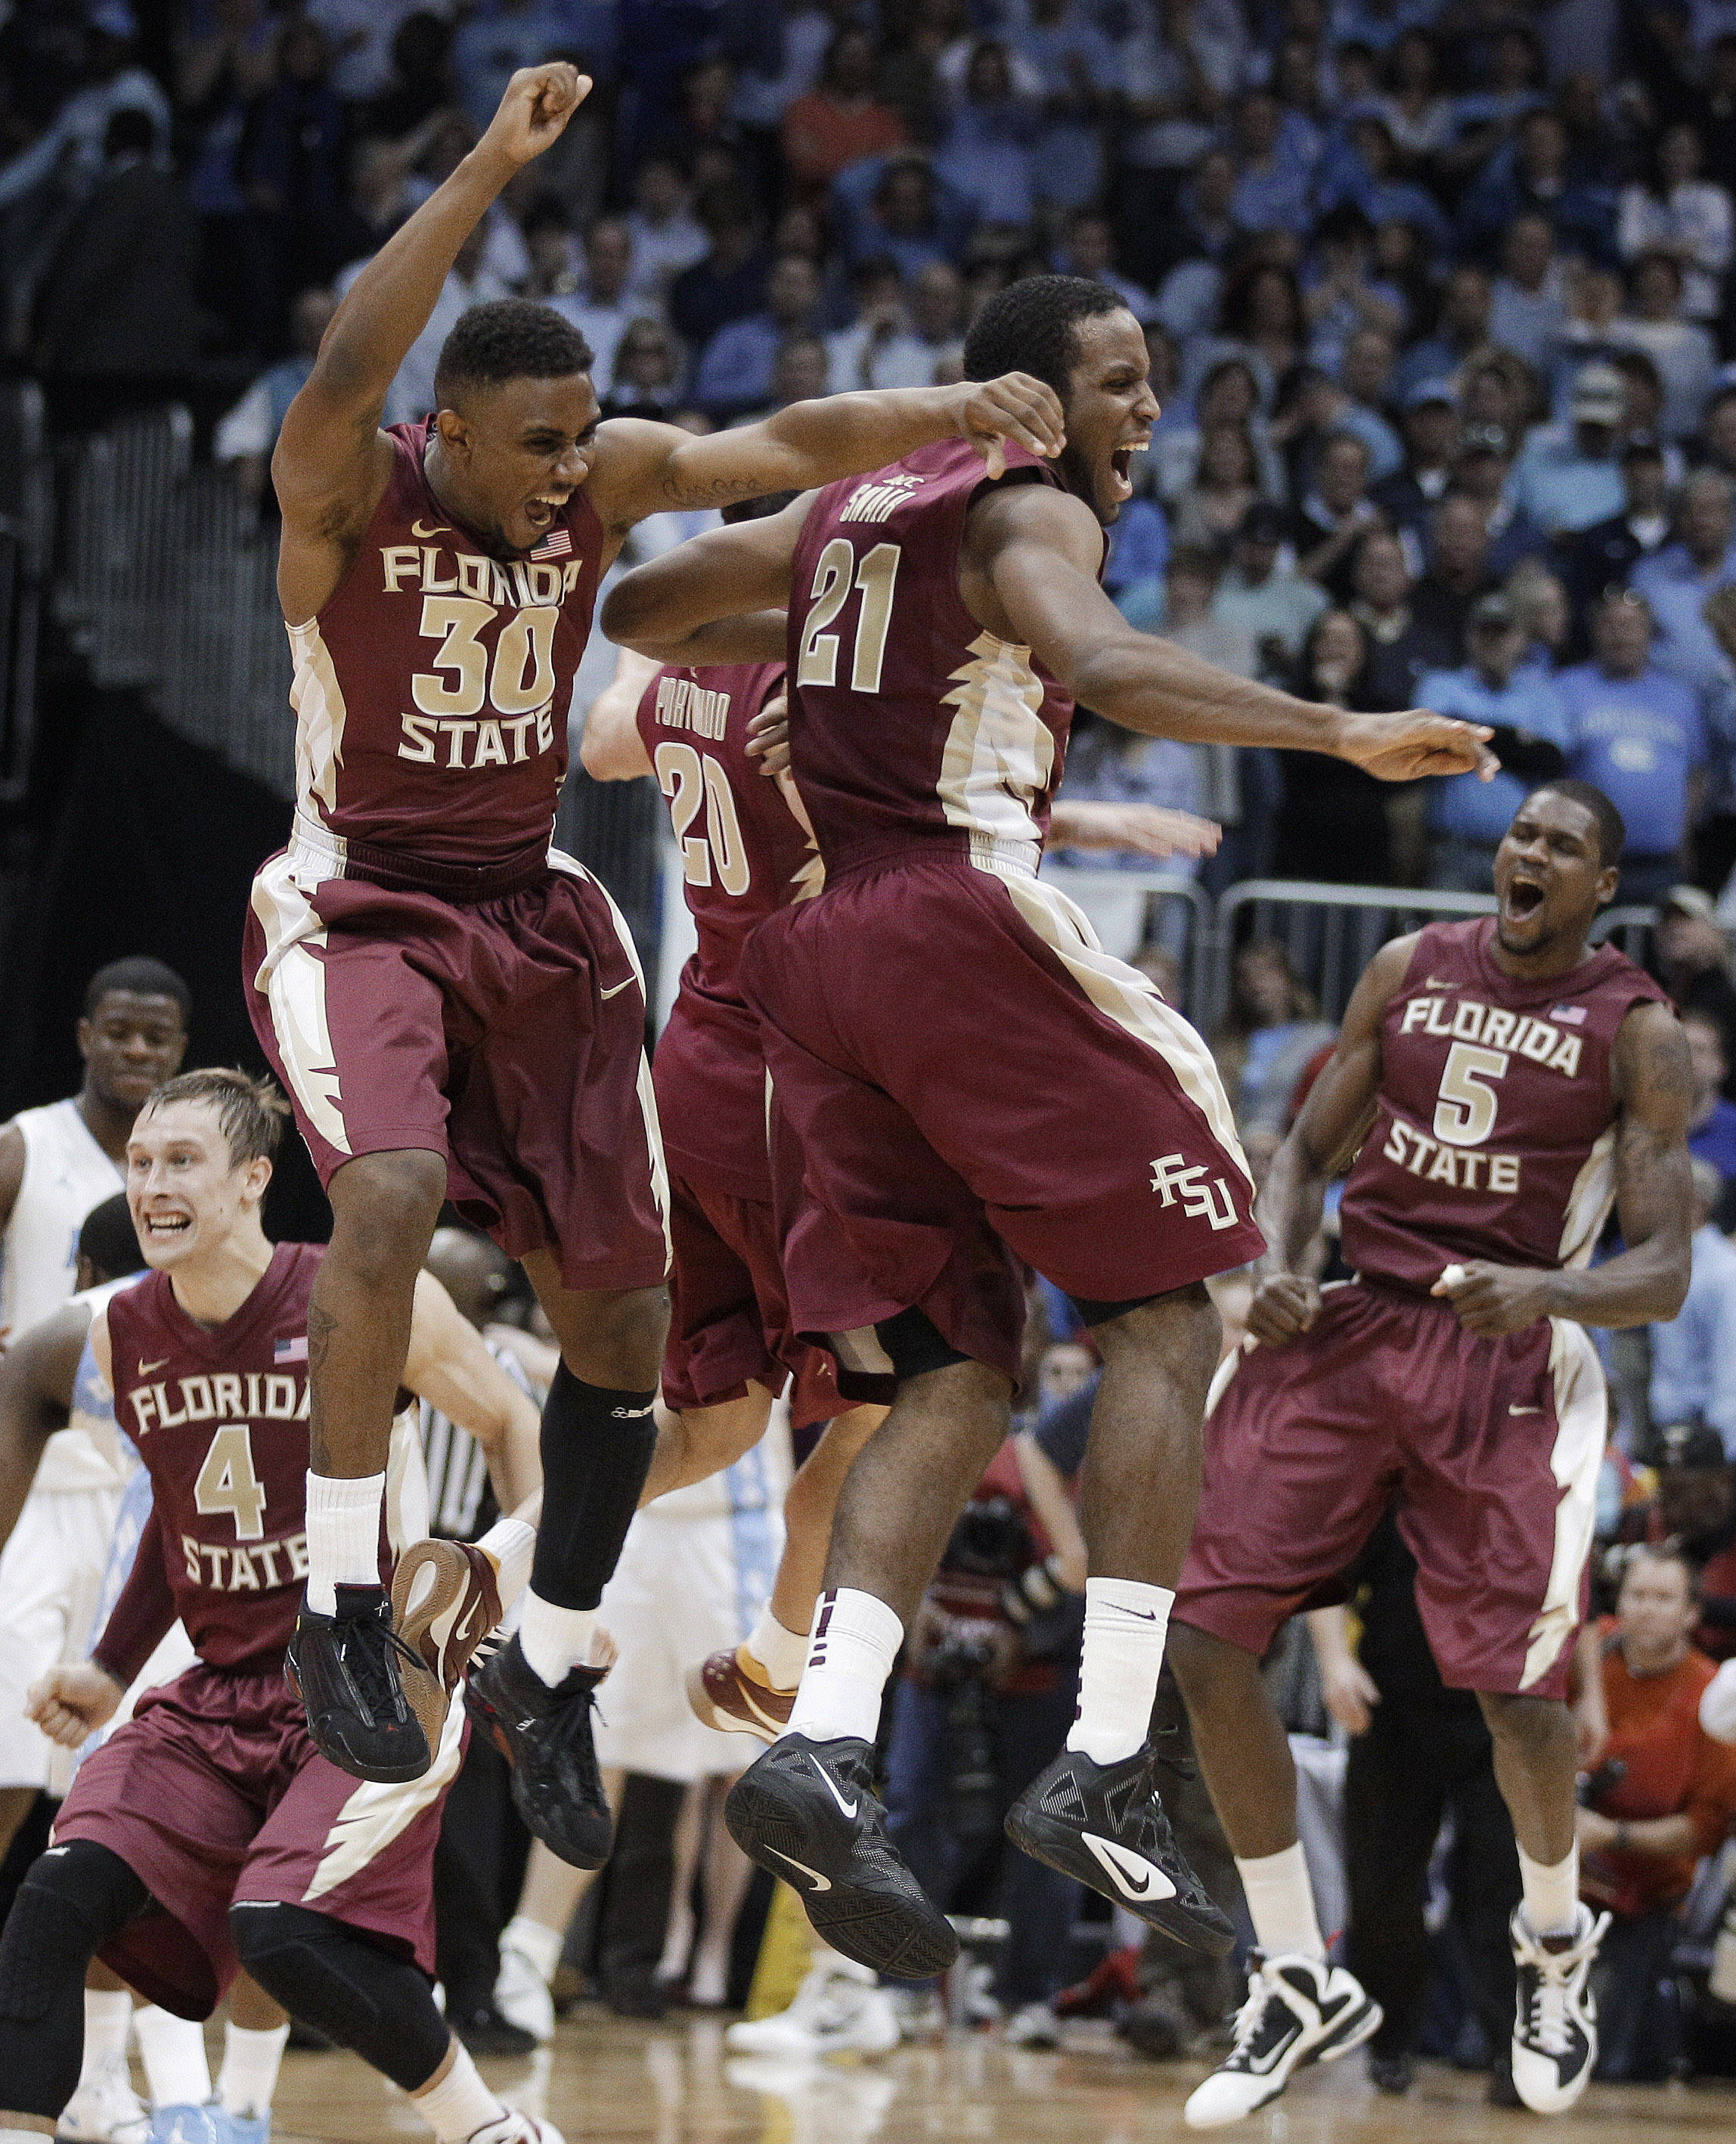 The Seminole team celebrates. (AP Photo/Chuck Burton)